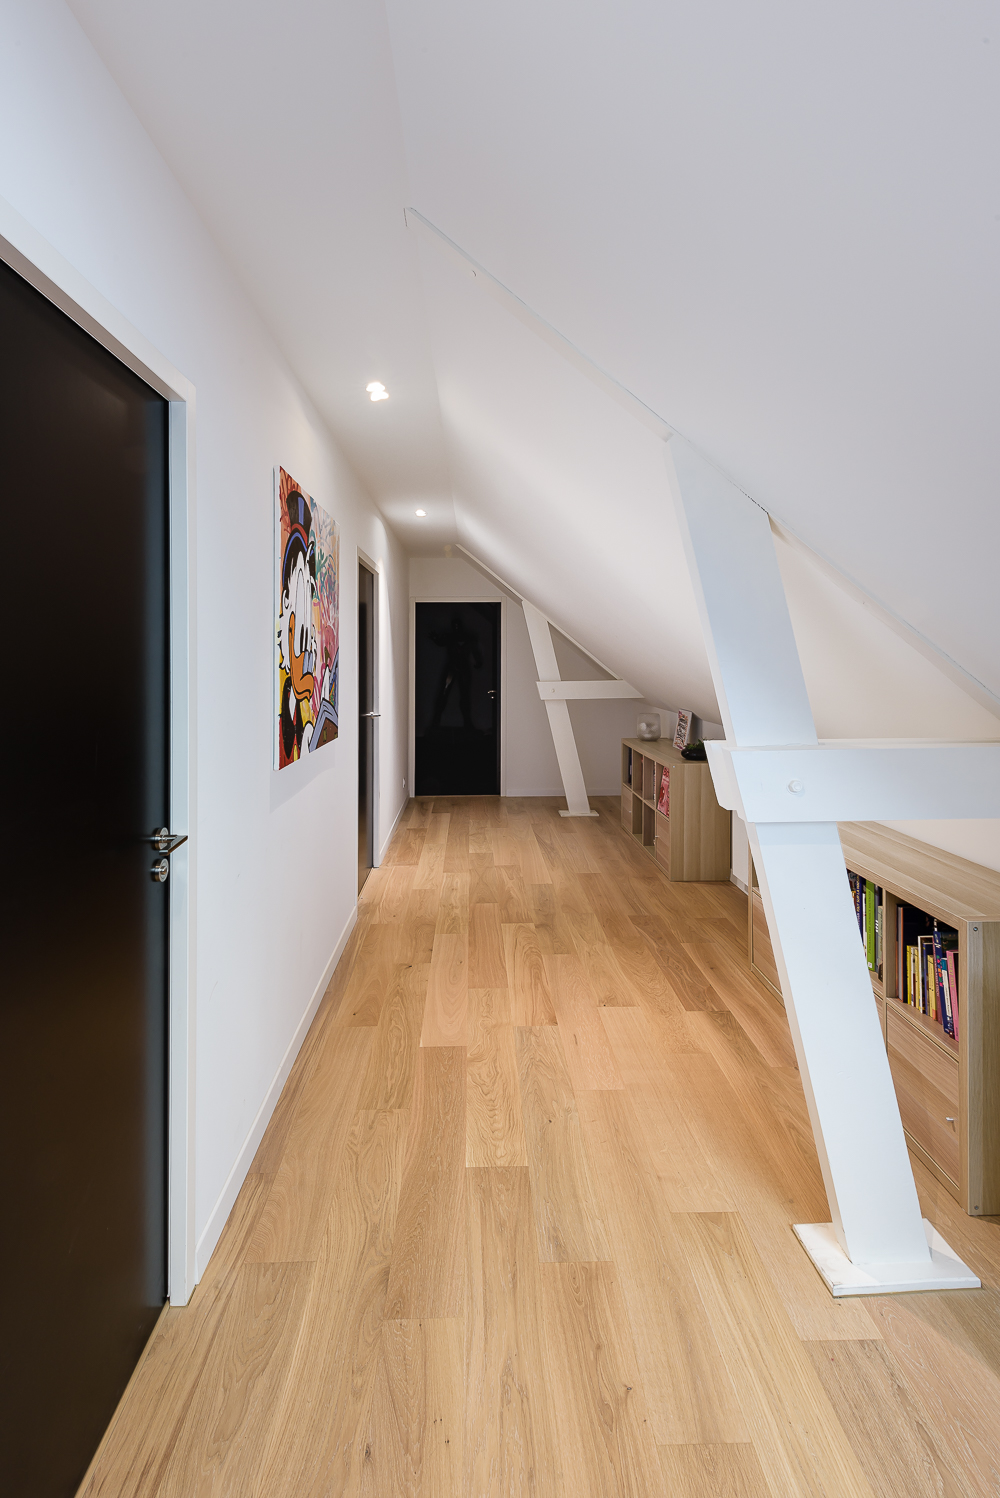 photographe d'architecture ©INTERVALphoto : LEFORT Claire, Architecte, rénovation maison individuelle, Rennes (35)